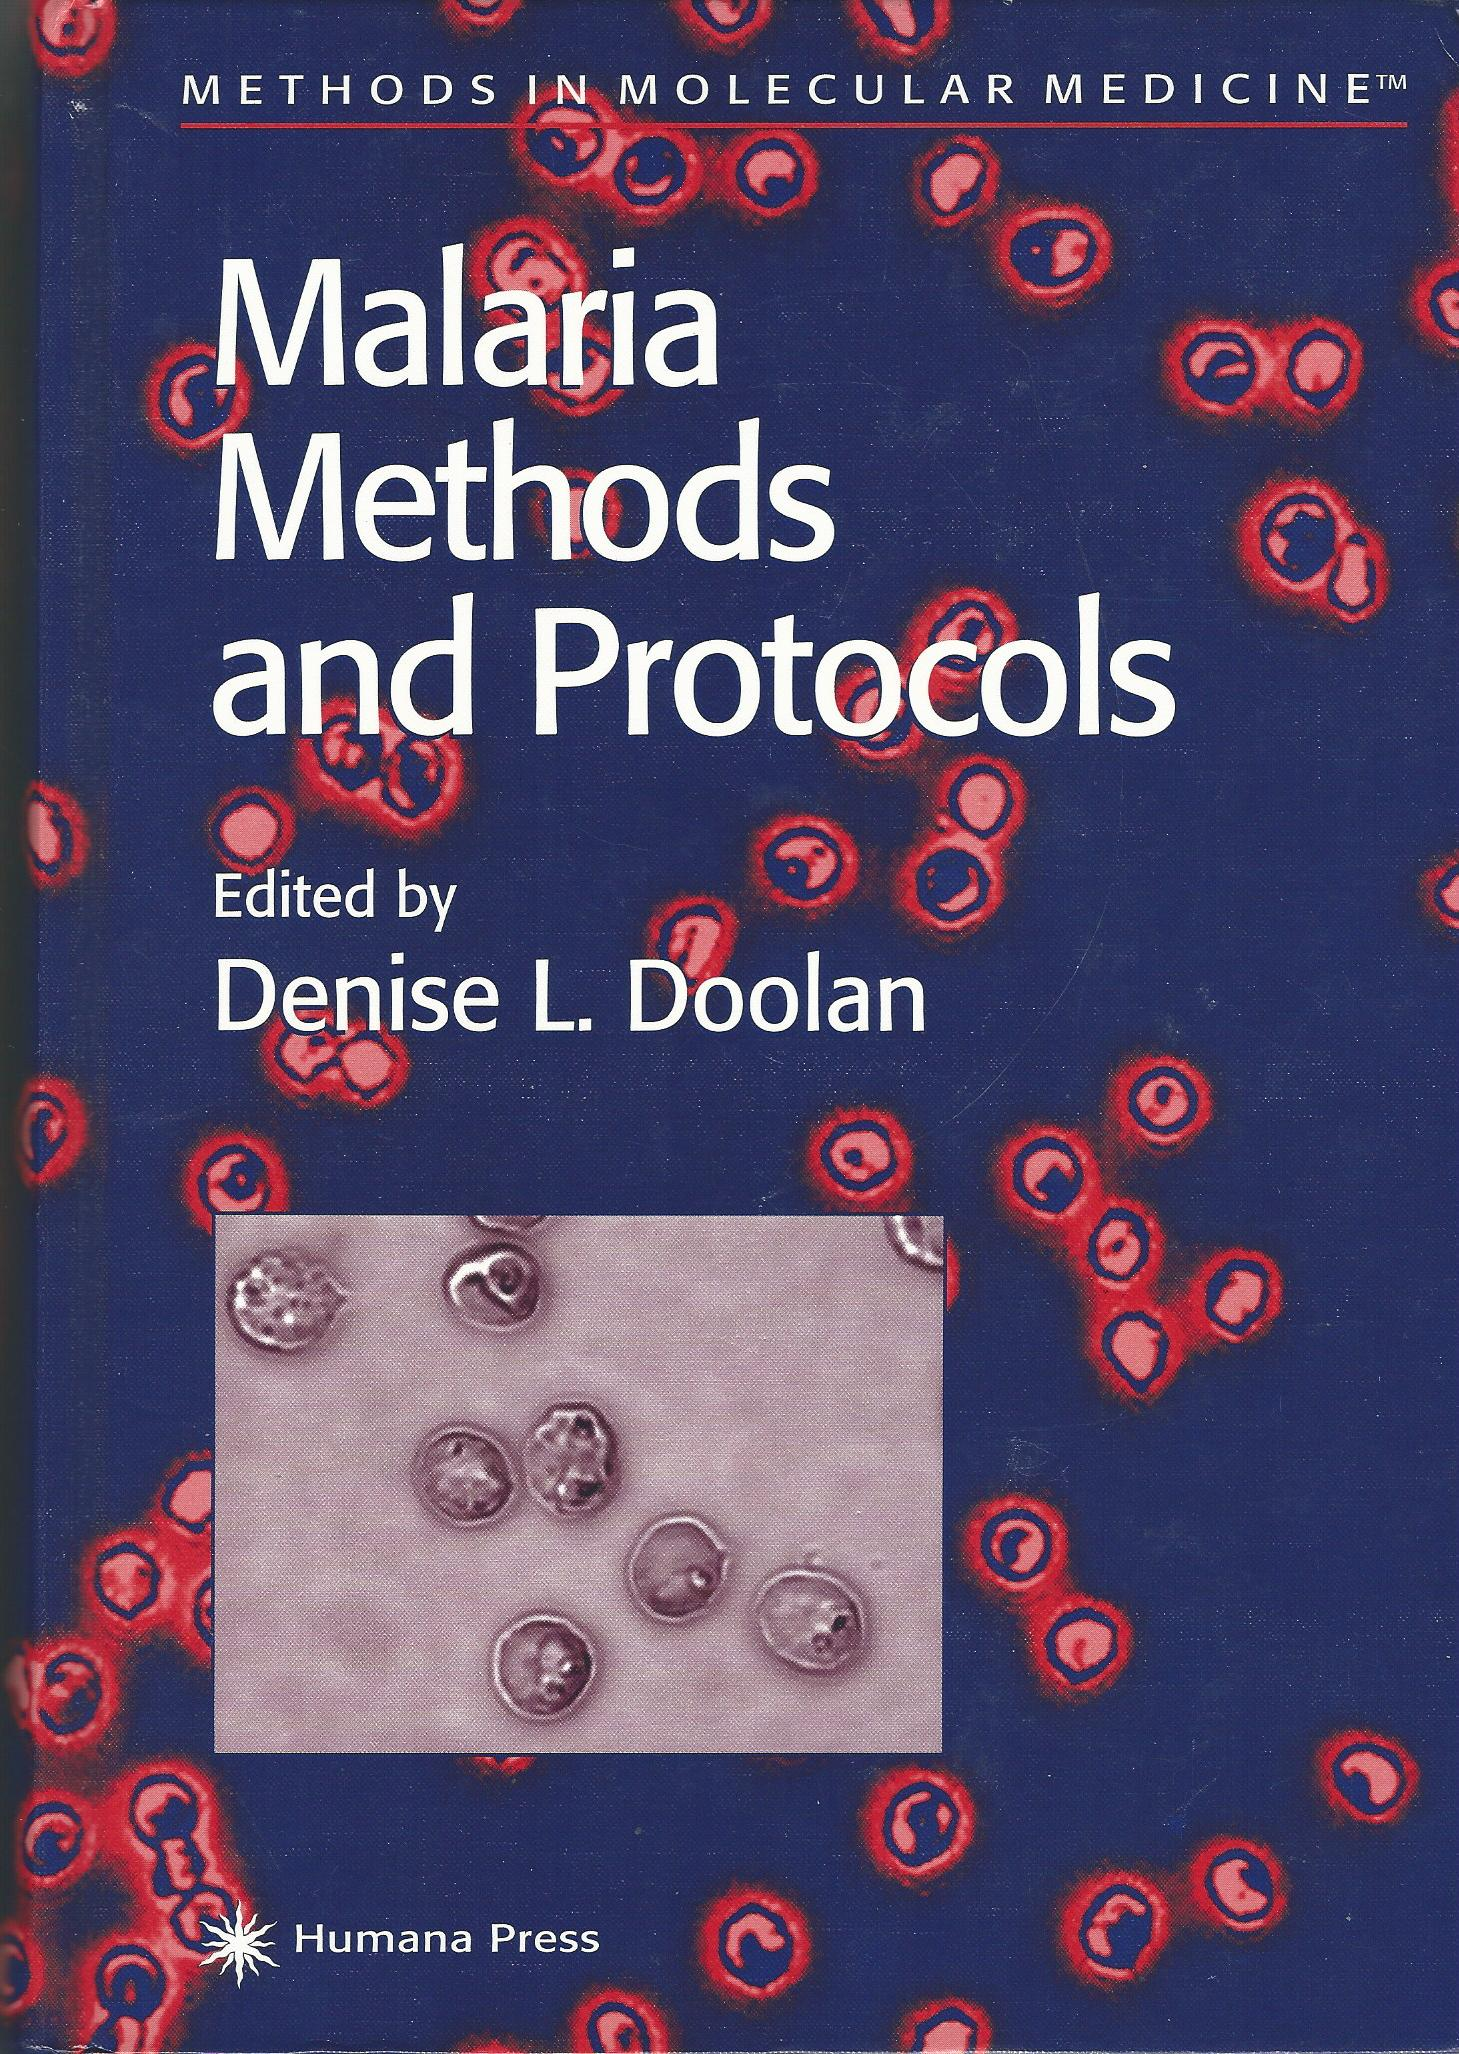 Image for Malaria Methods and Protocols (Methods in Molecular Medicine)